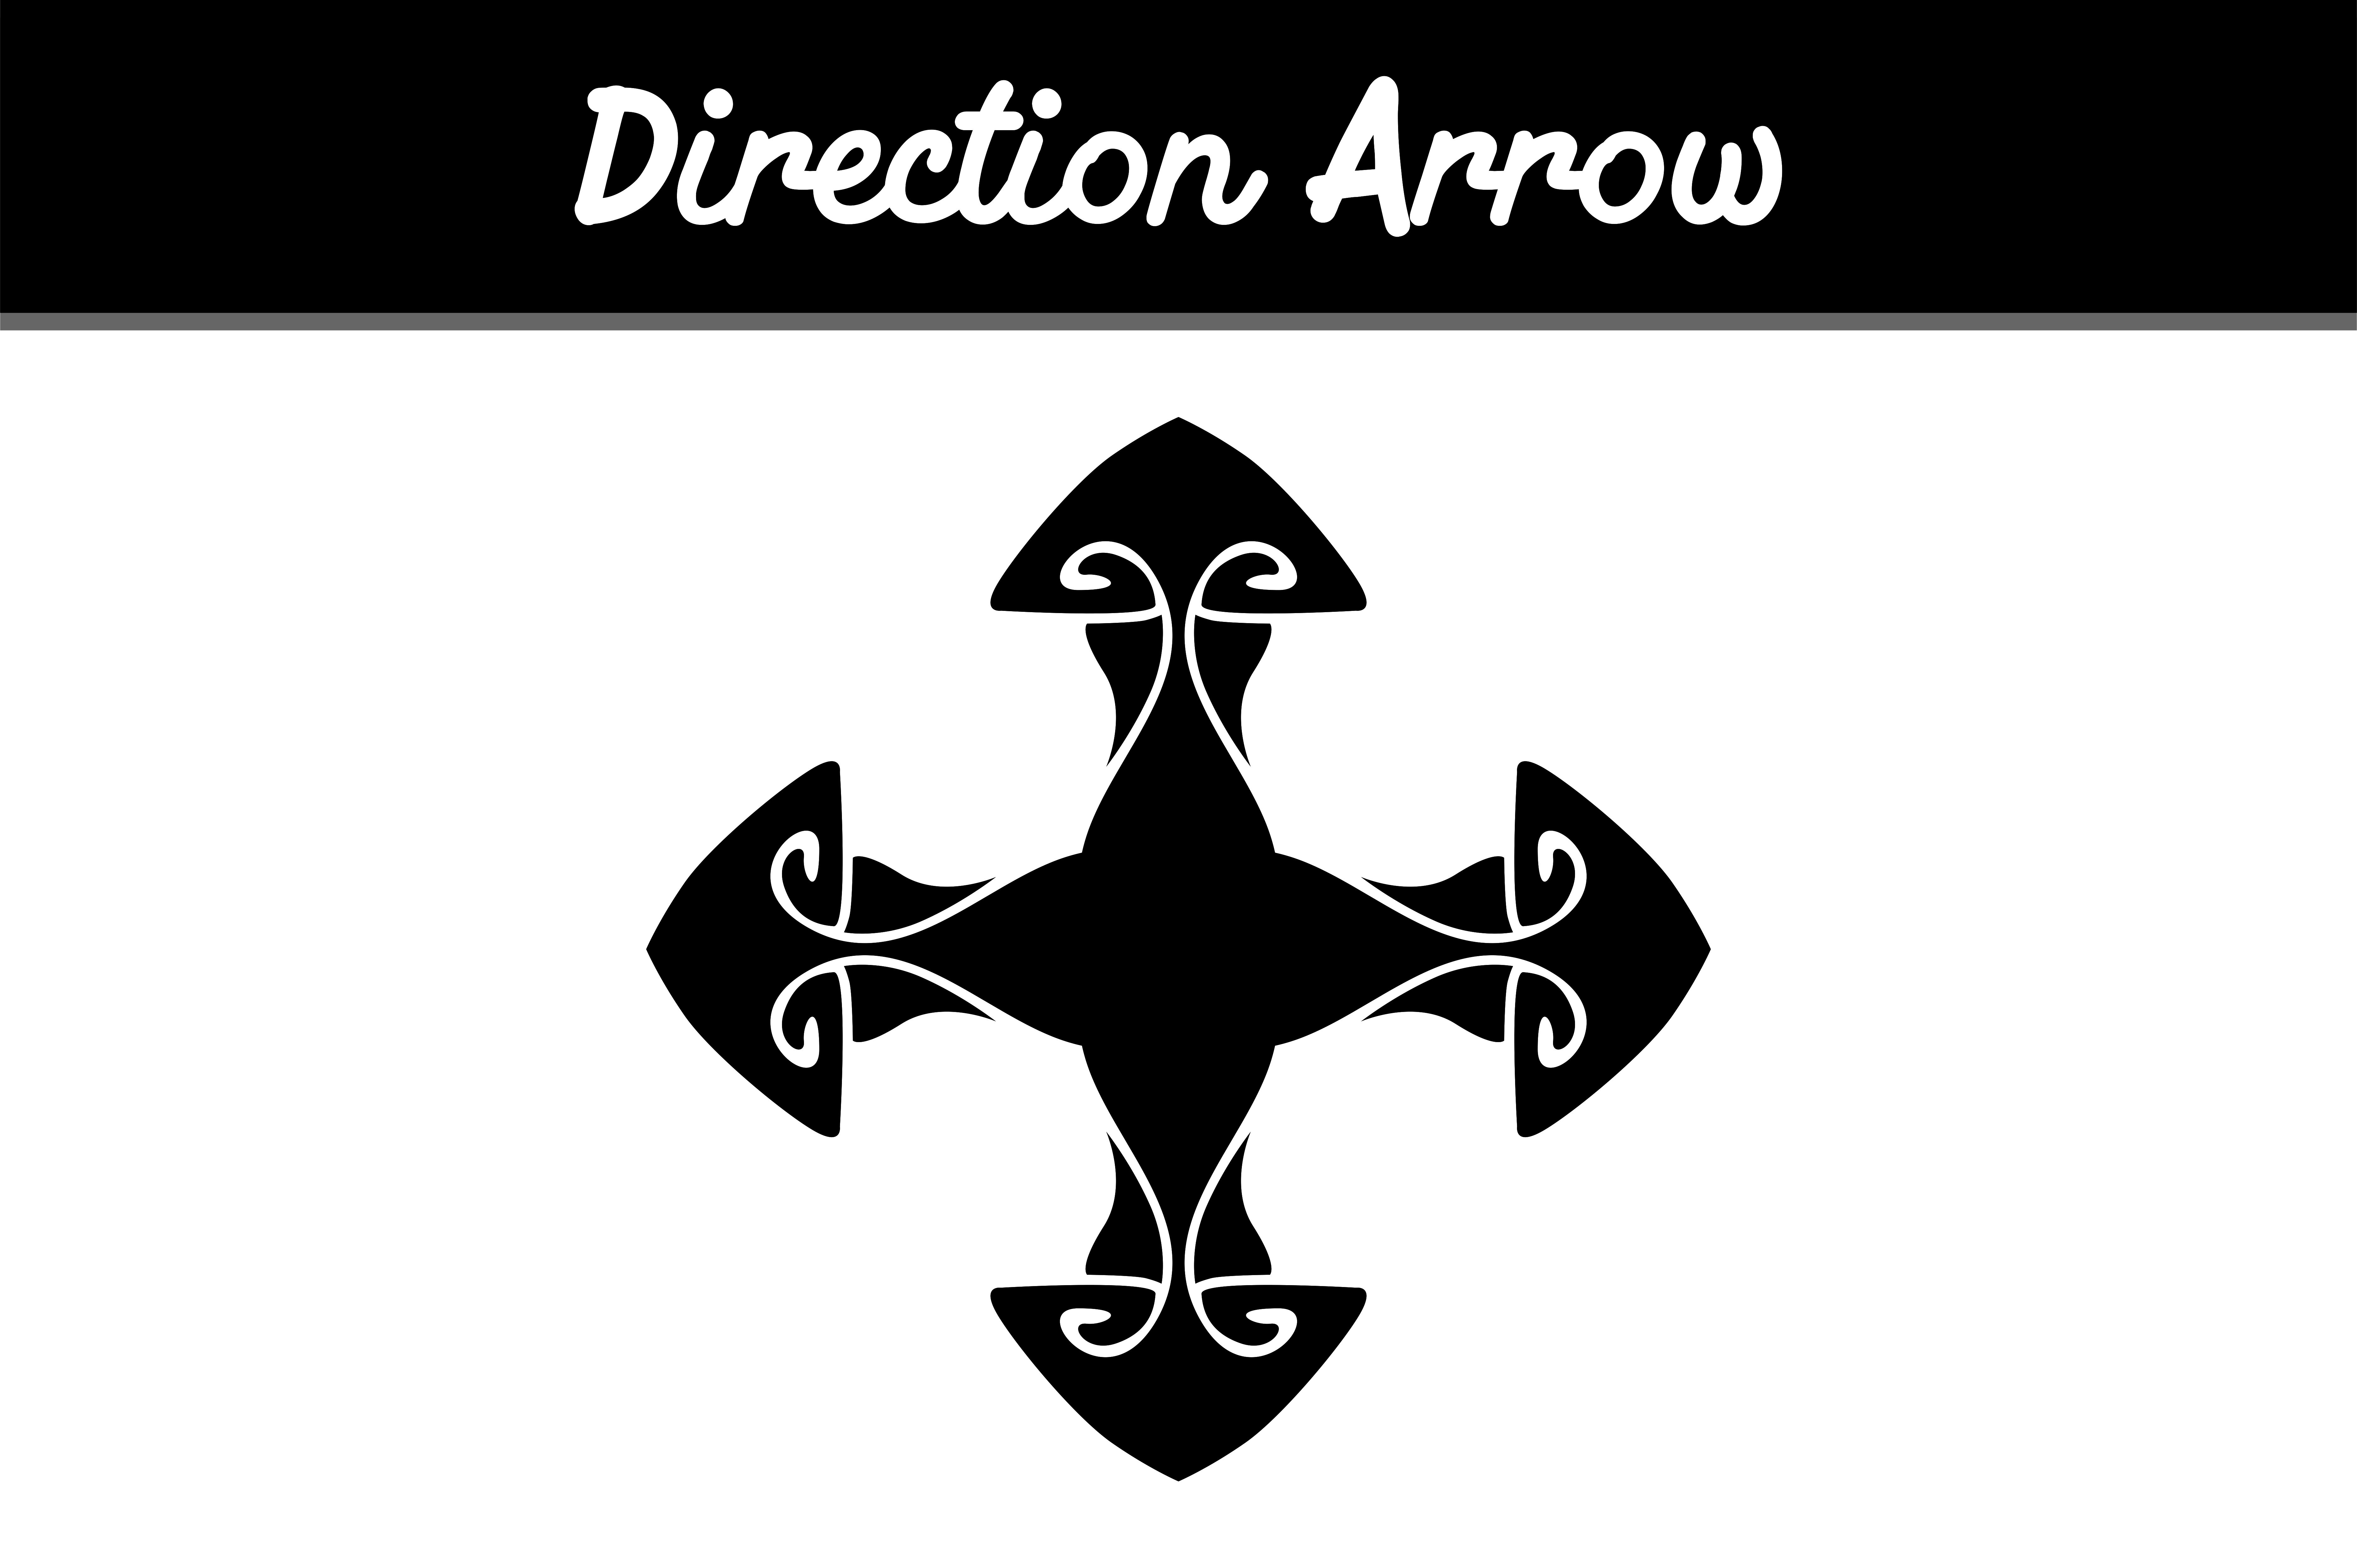 Download Free Direction Arrow Graphic By Arief Sapta Adjie Creative Fabrica for Cricut Explore, Silhouette and other cutting machines.